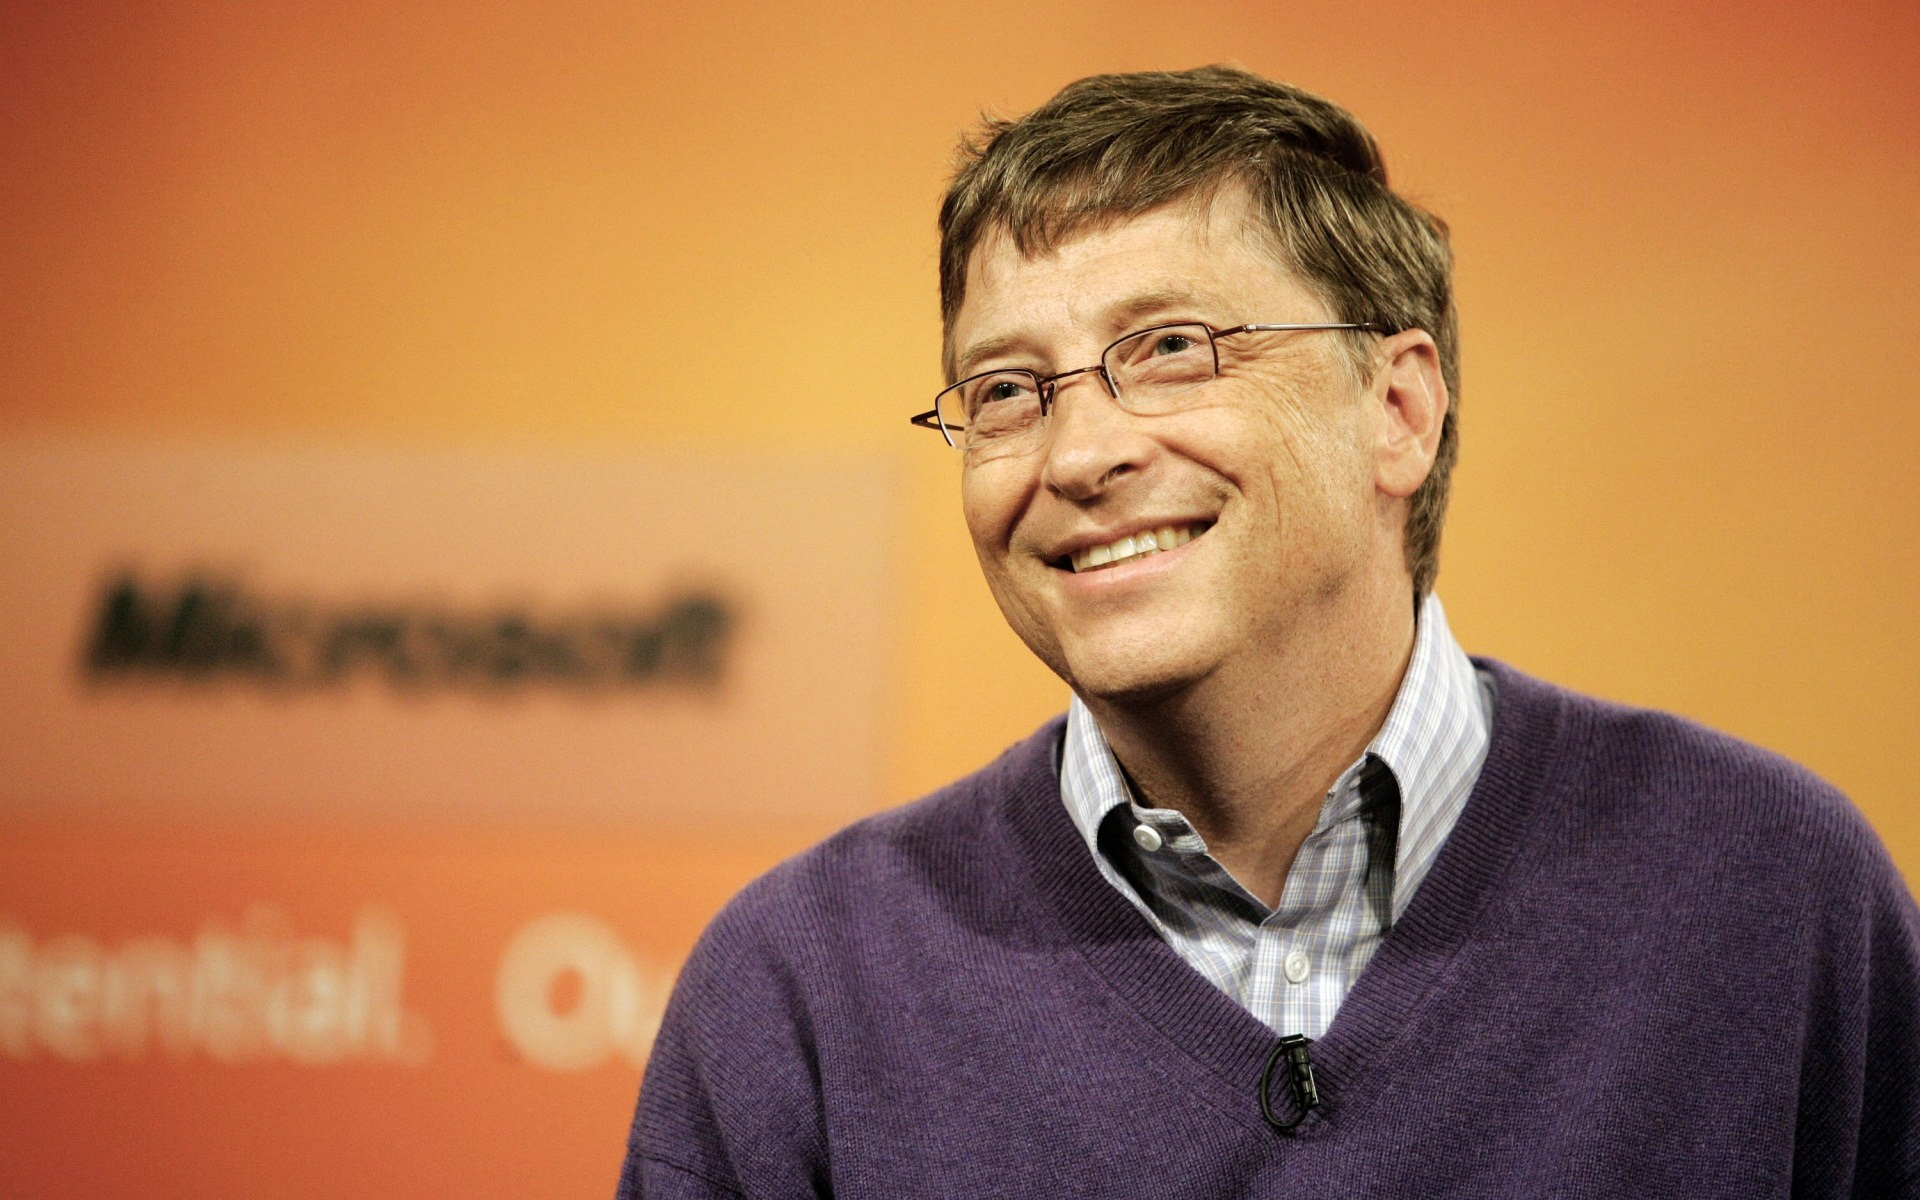 Bill Gates Wallpapers & Pictures